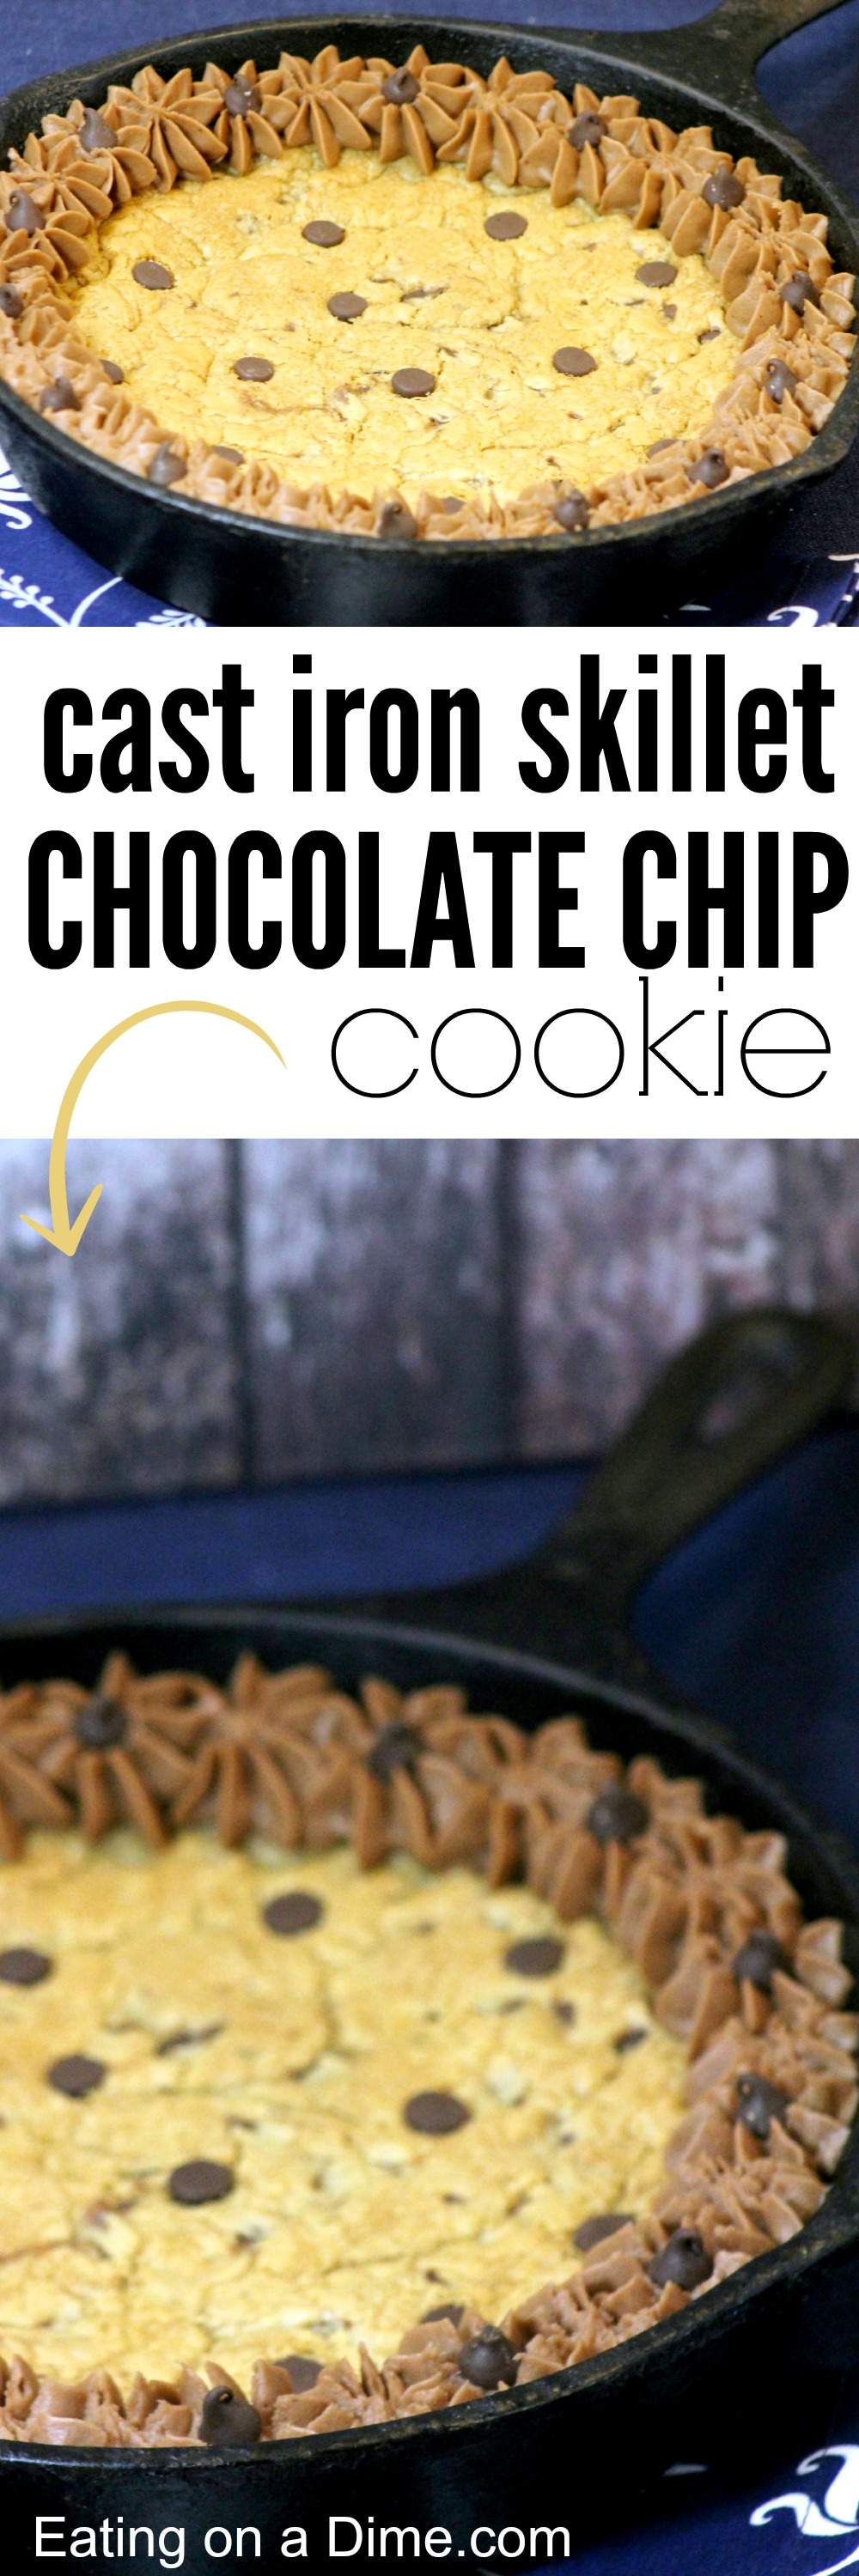 Cast Iron Skillet Chocolate Chip Cookie - Eating on a Dime